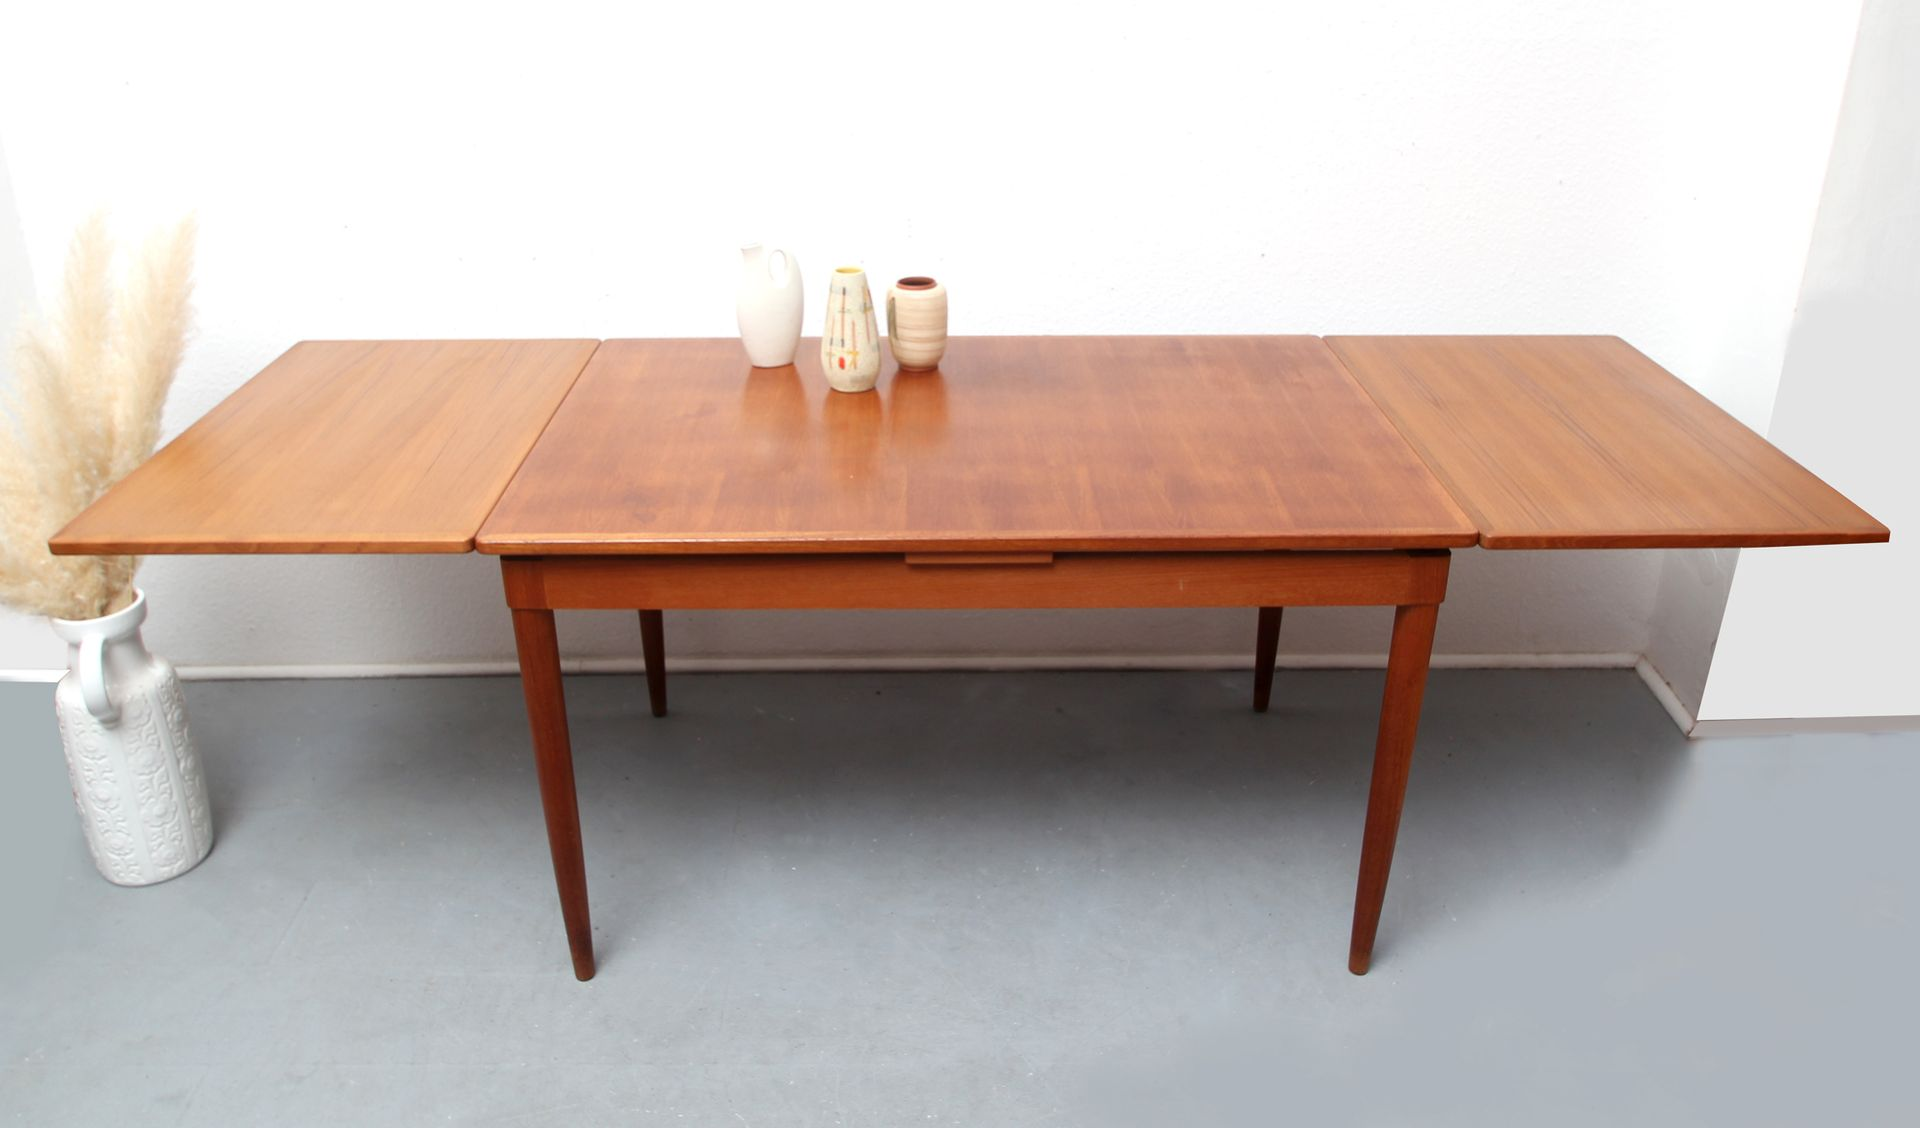 No 135 Teak Dining Table by Möller for sale at Pamono